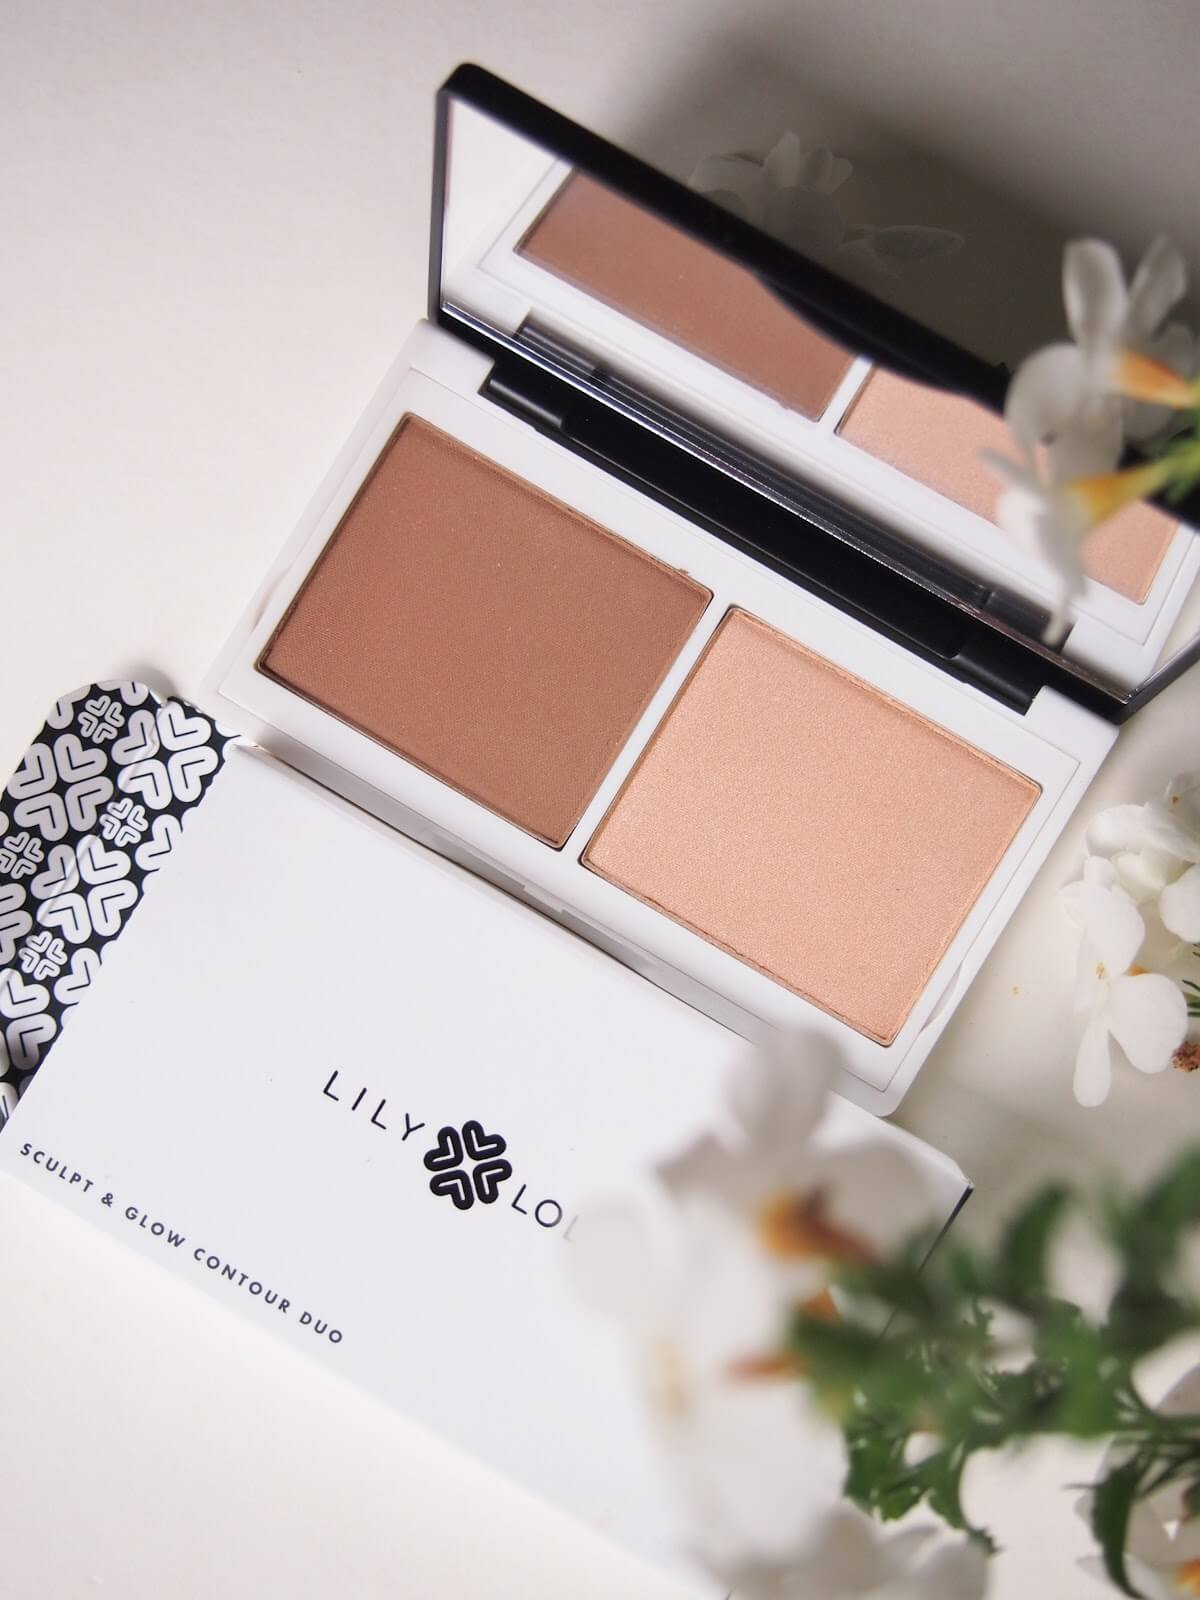 lily lolo sculpt and glow